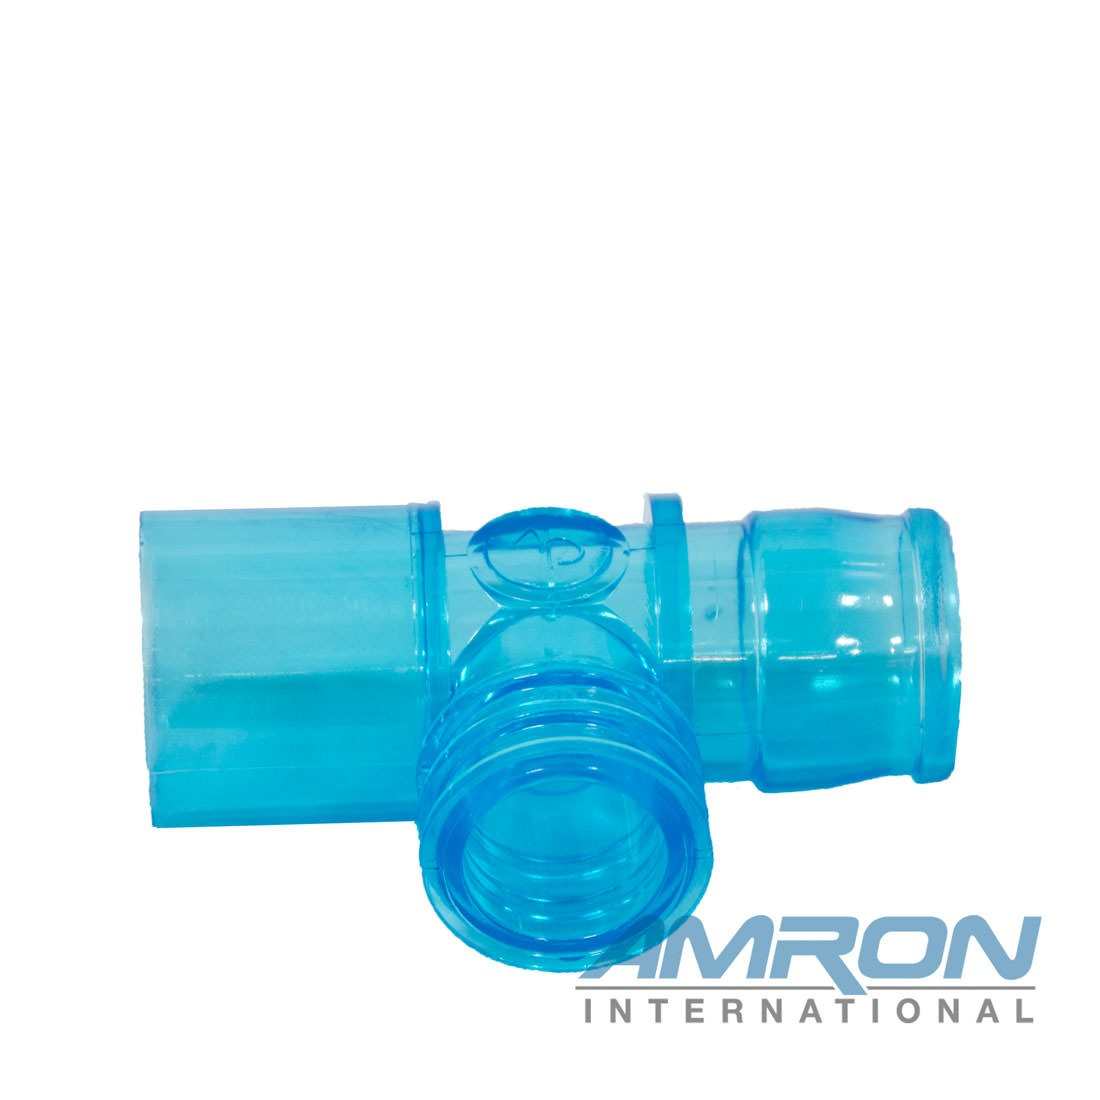 Amron International Multi-Access Tee - 22mm (CE Registered)